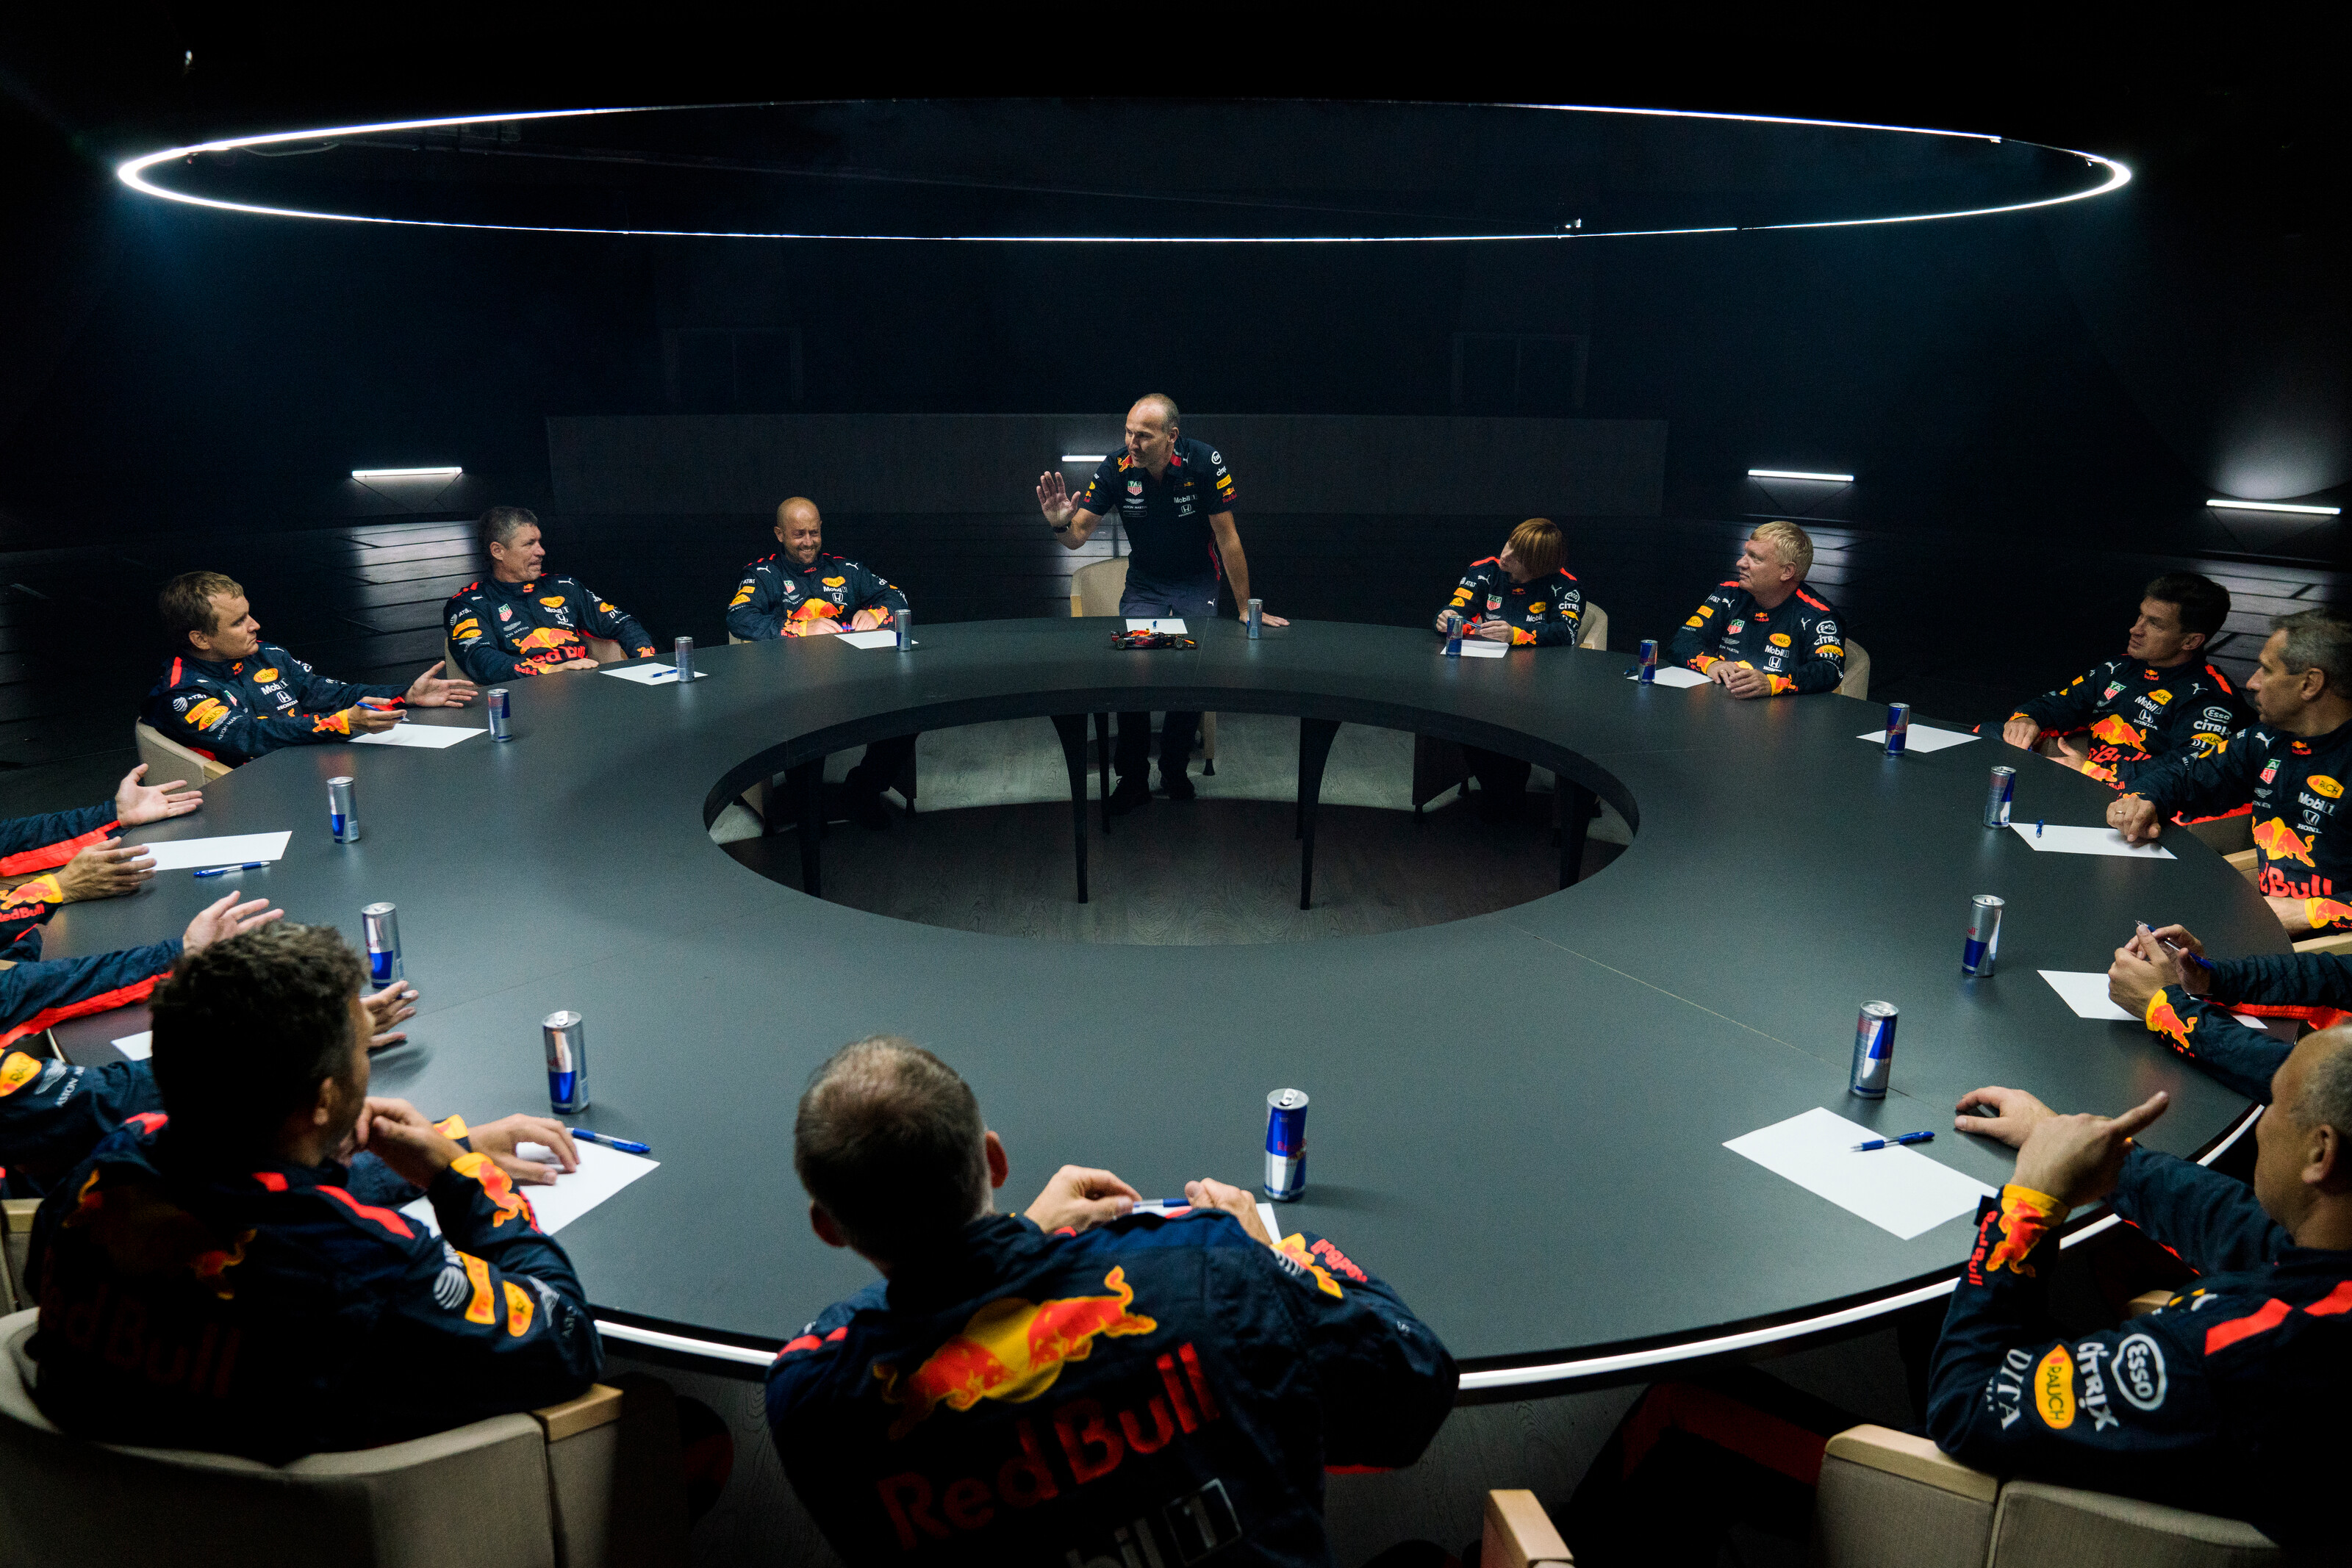 Red Bull Racing just did a pit stop in zero gravity